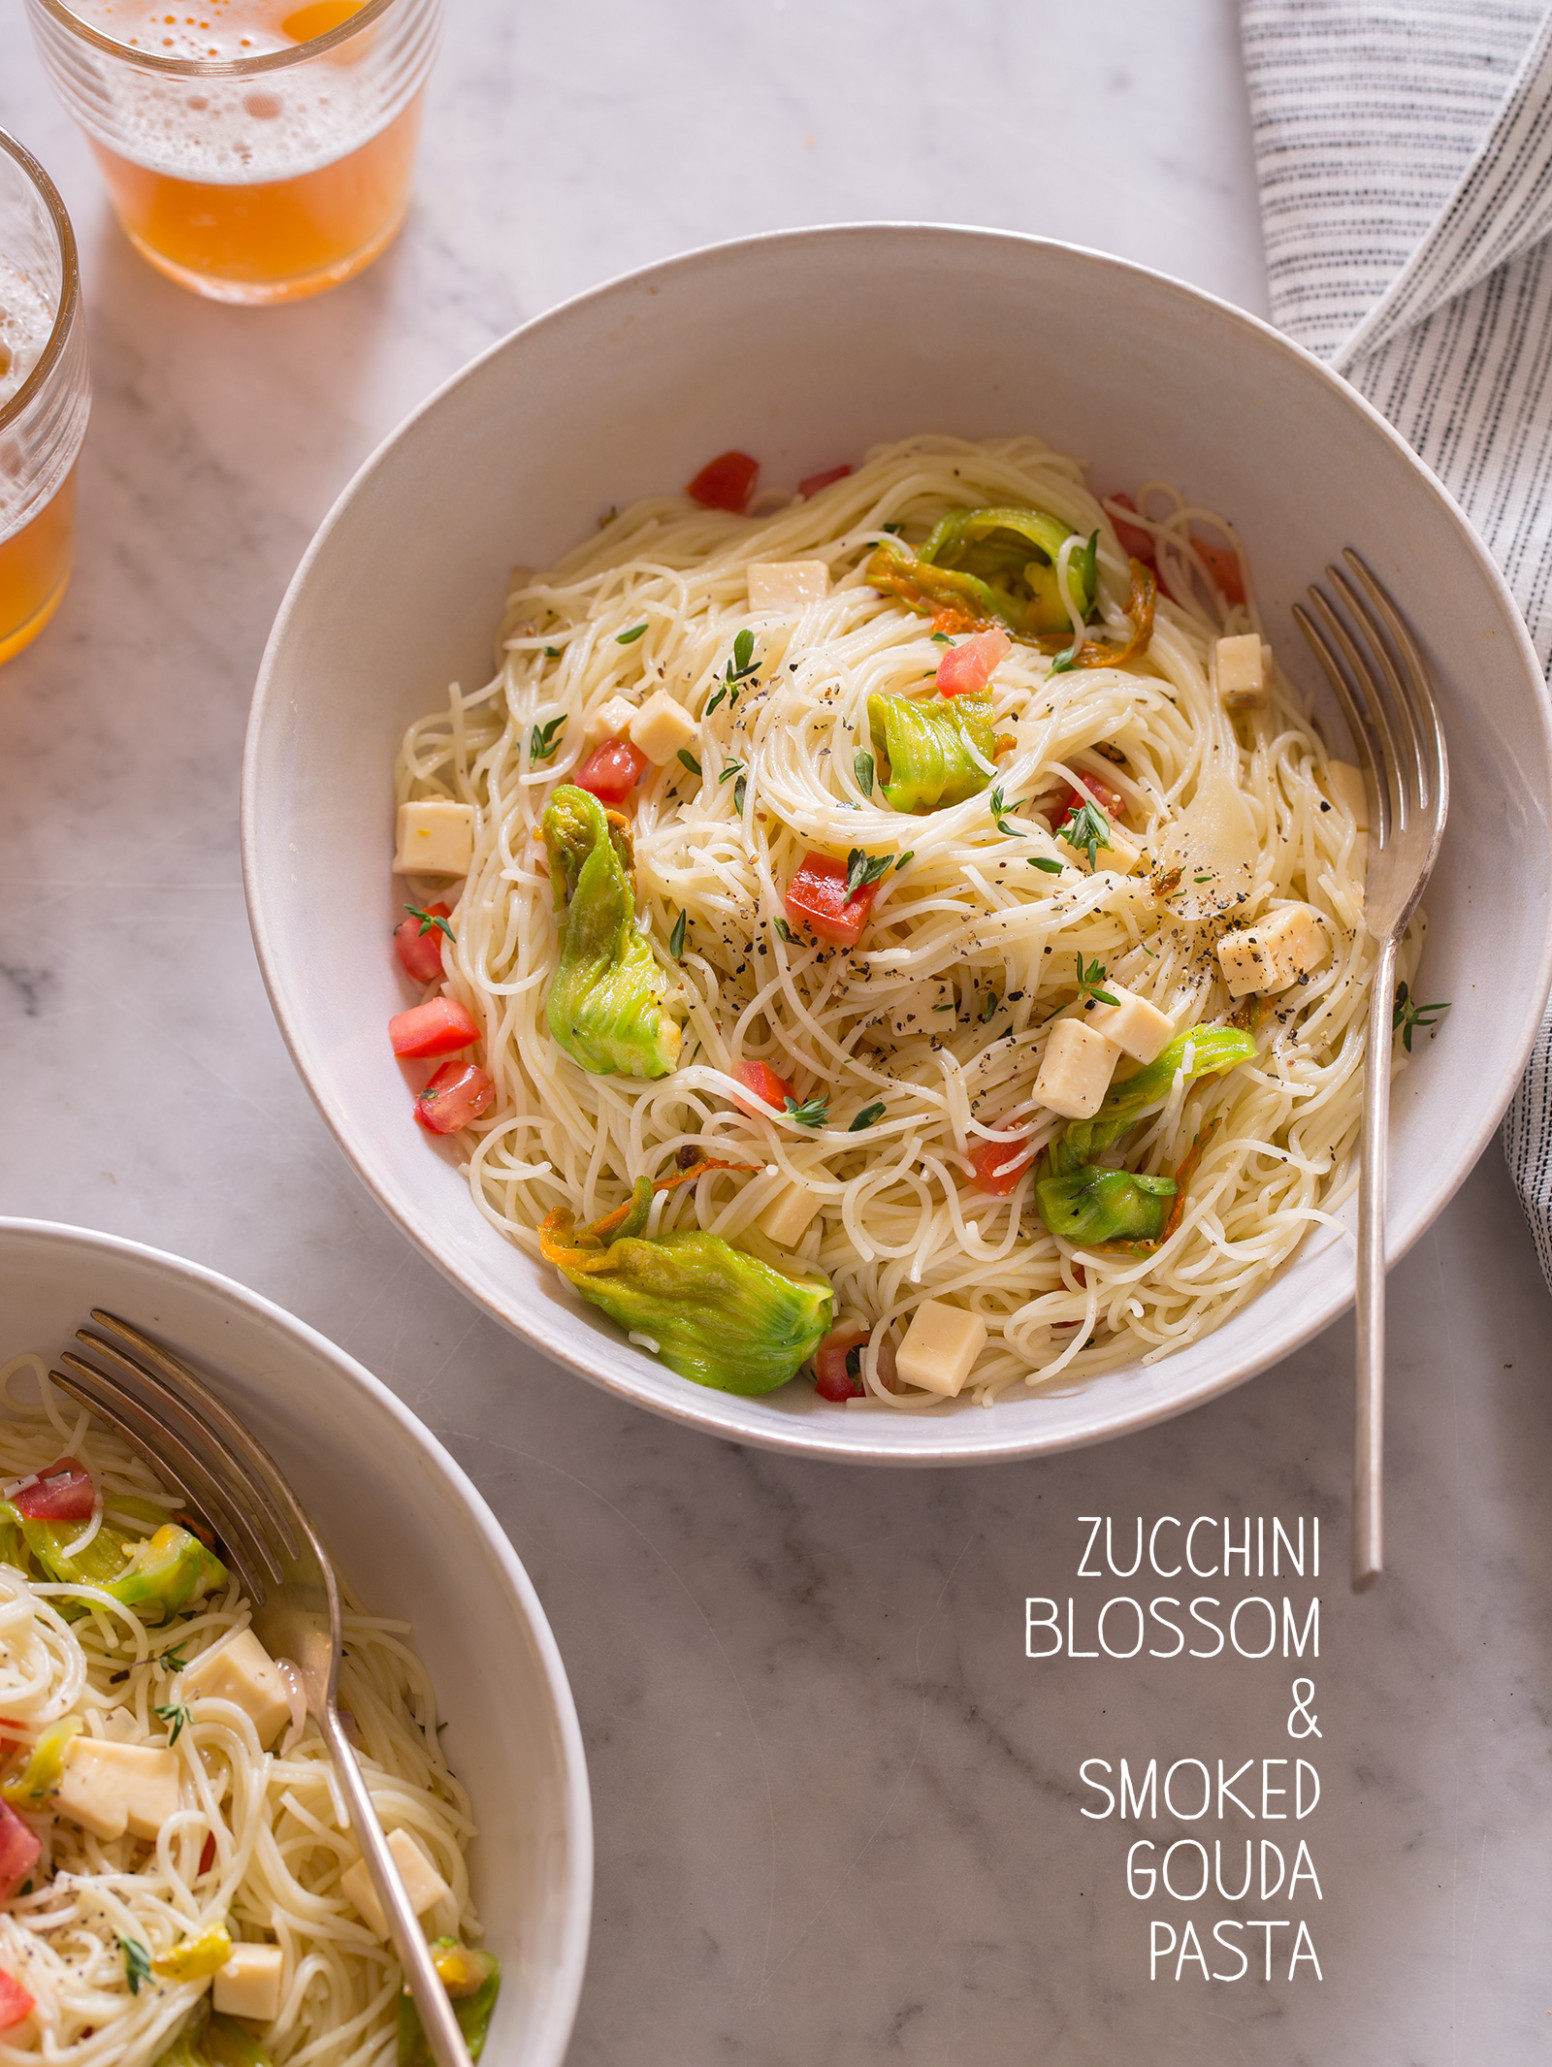 Zucchini Blossom and Smoked Gouda Pasta | Spoon Fork Bacon